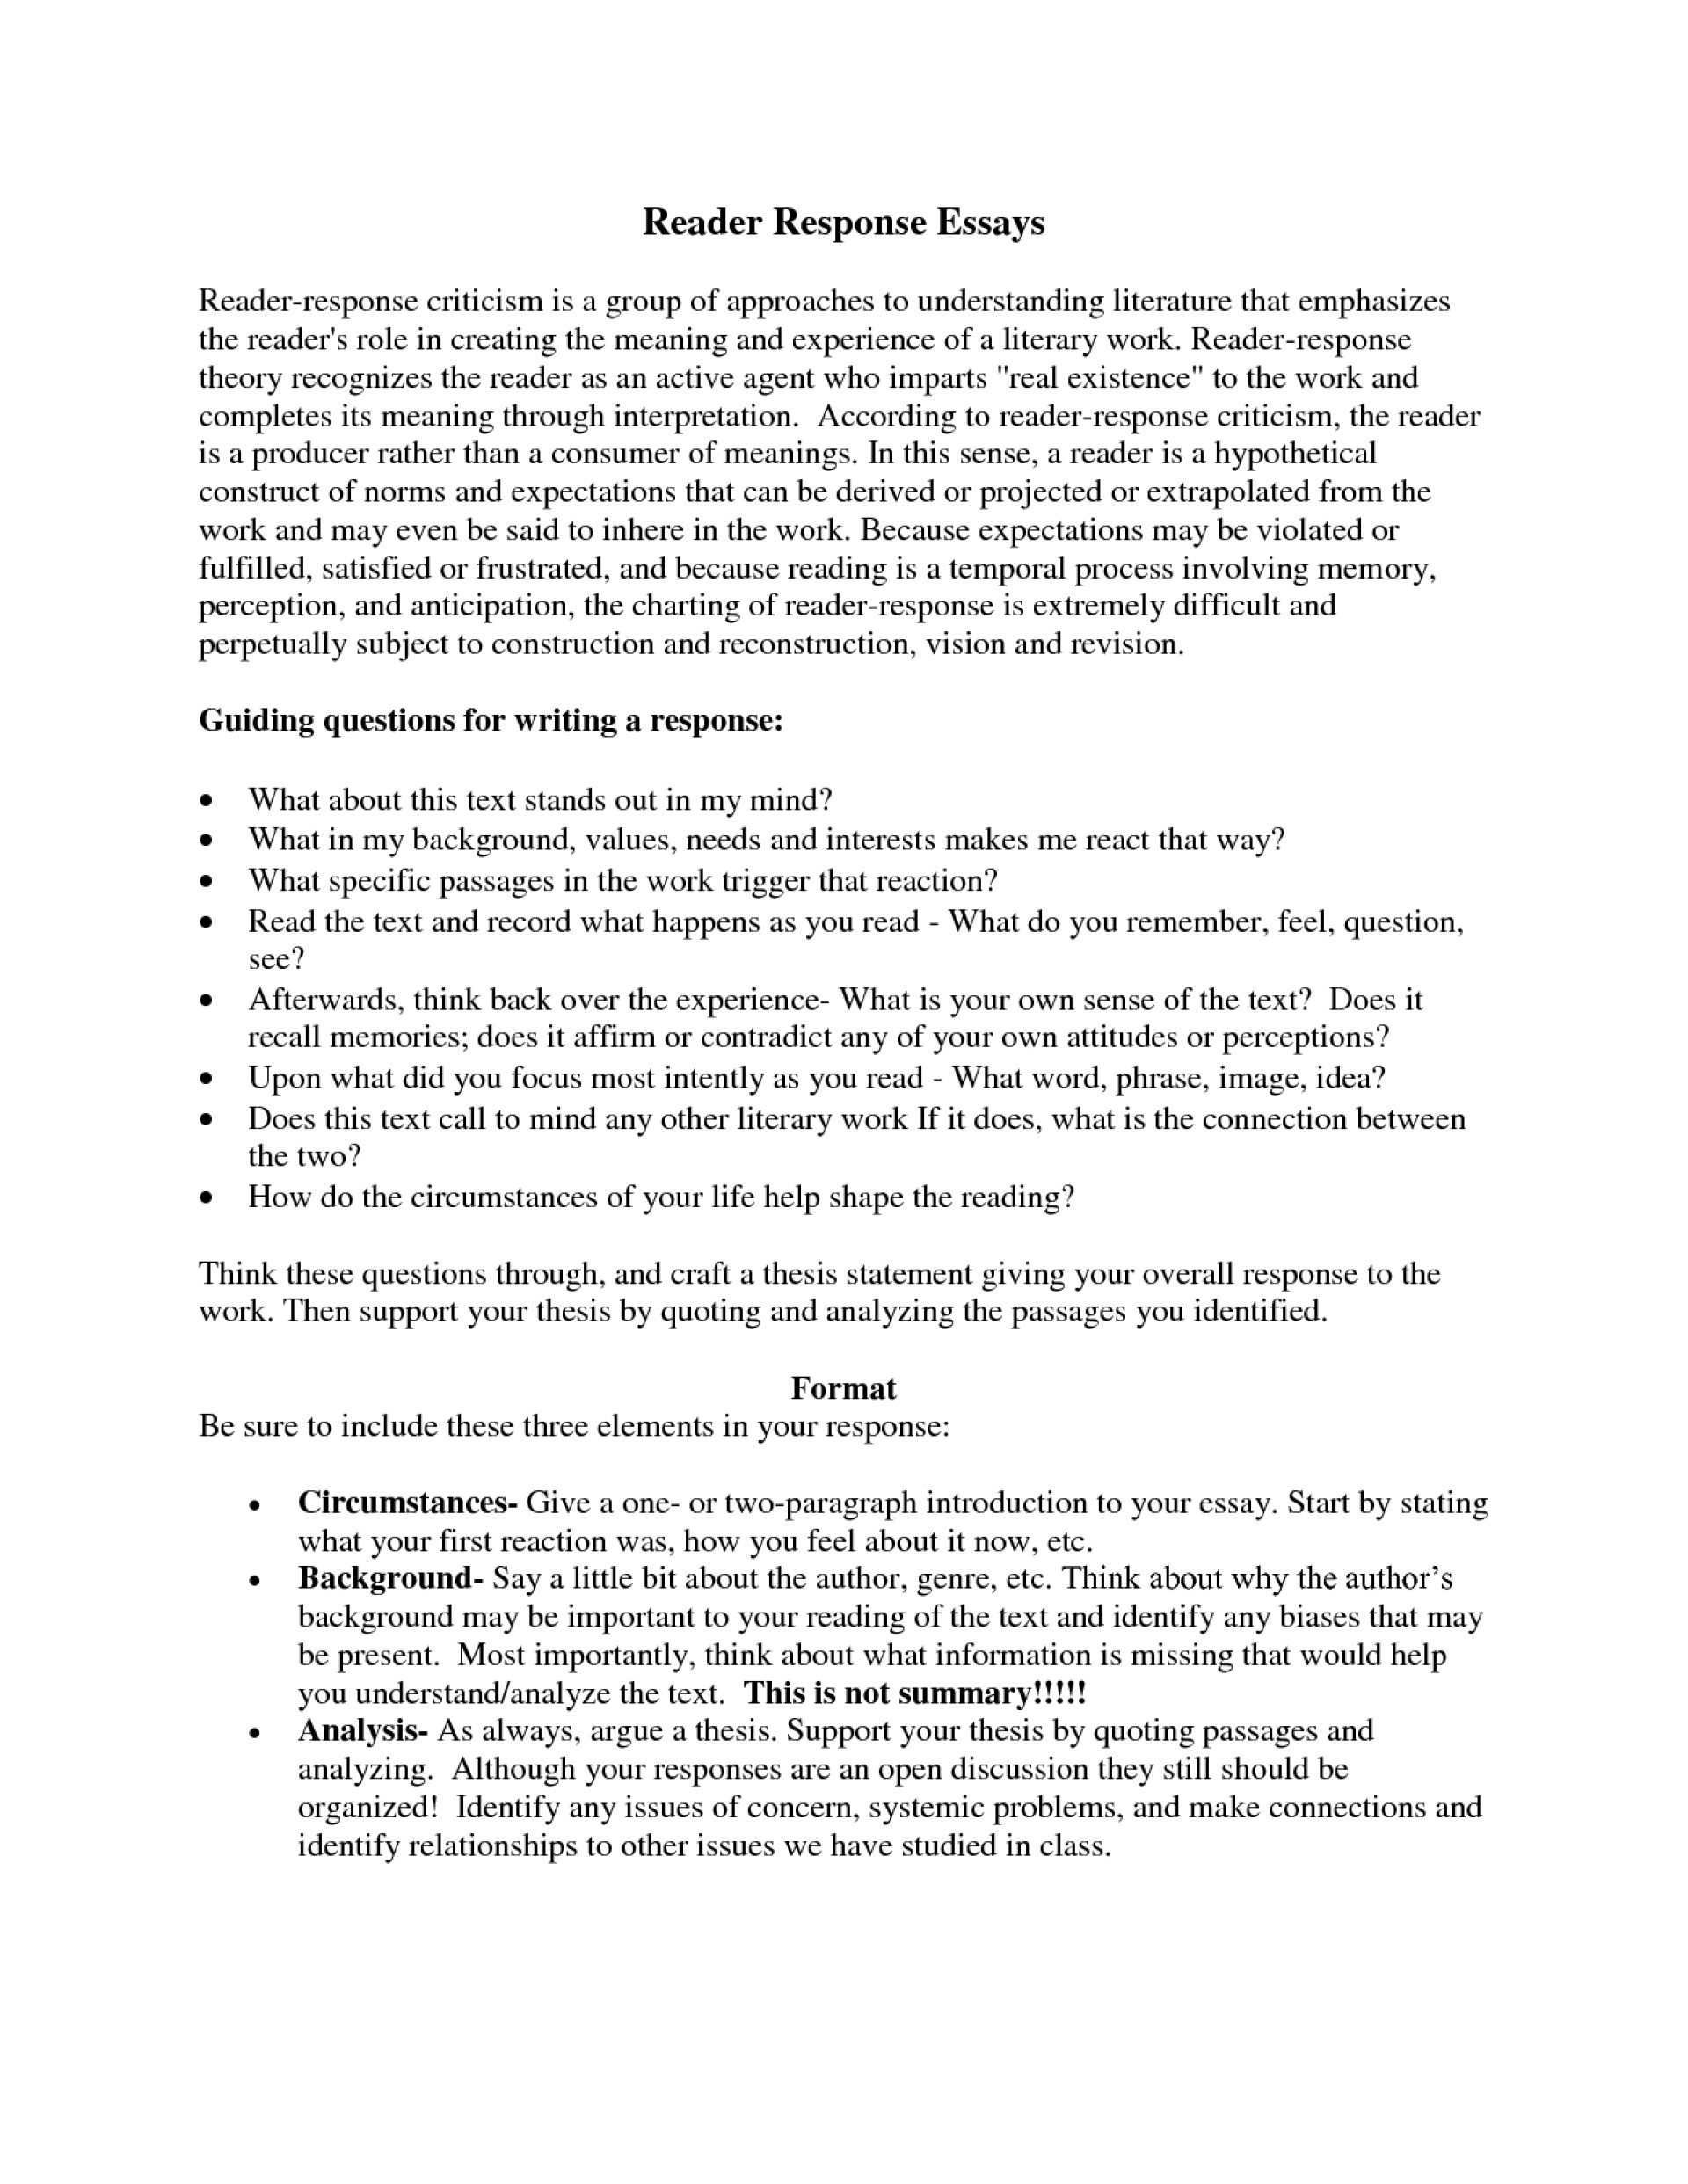 005 Response Essay Example Background Define Discussd Illustrate With Sample Of Critical Summaryalysis Crossing Brooklyn How To Write Introduction Writing Workshop Awful Text Analysis Extended Year 12 1920